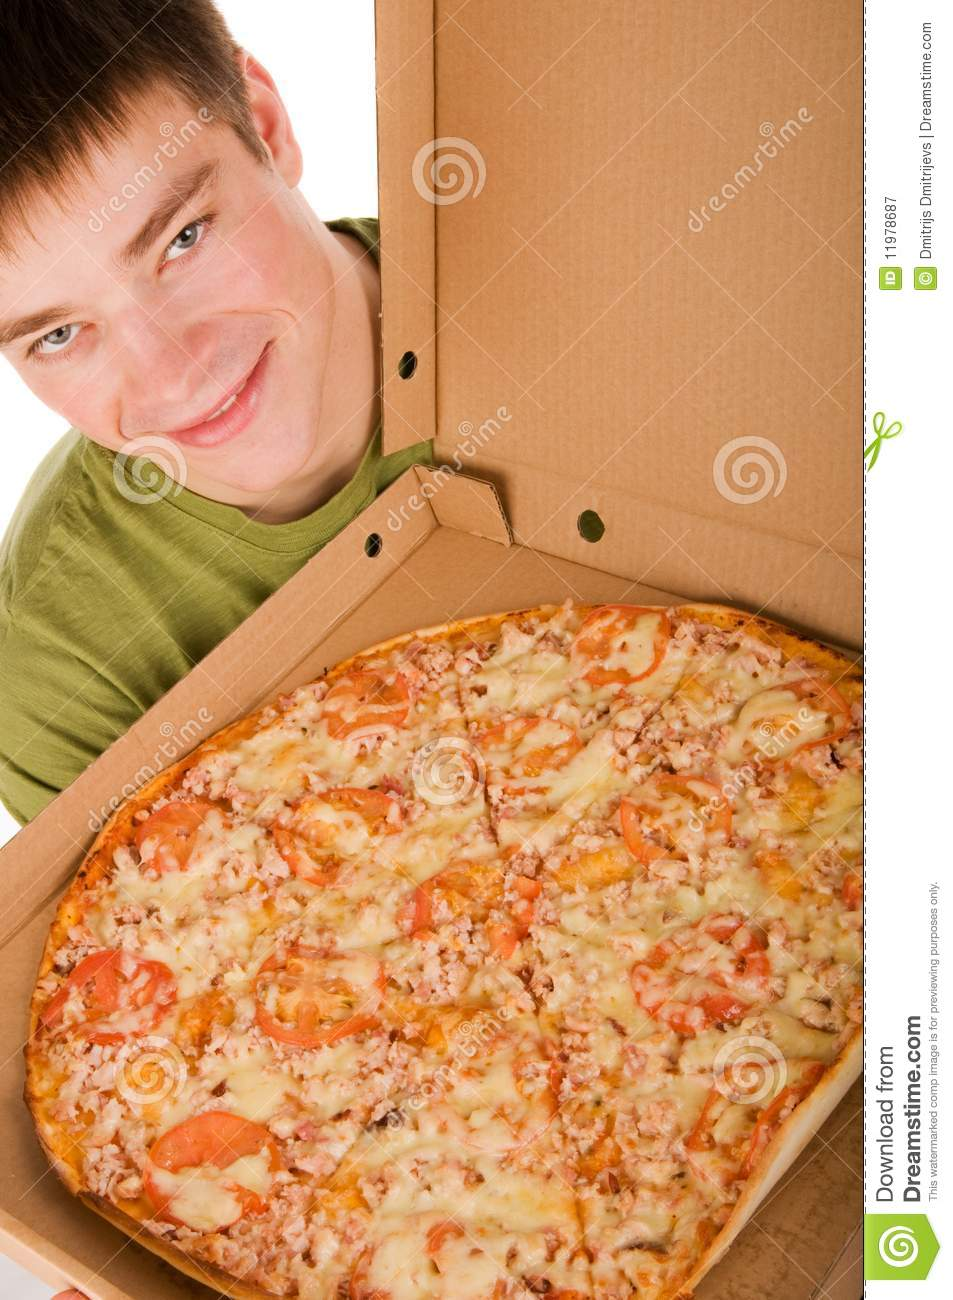 The Pizza Boy He Delivers